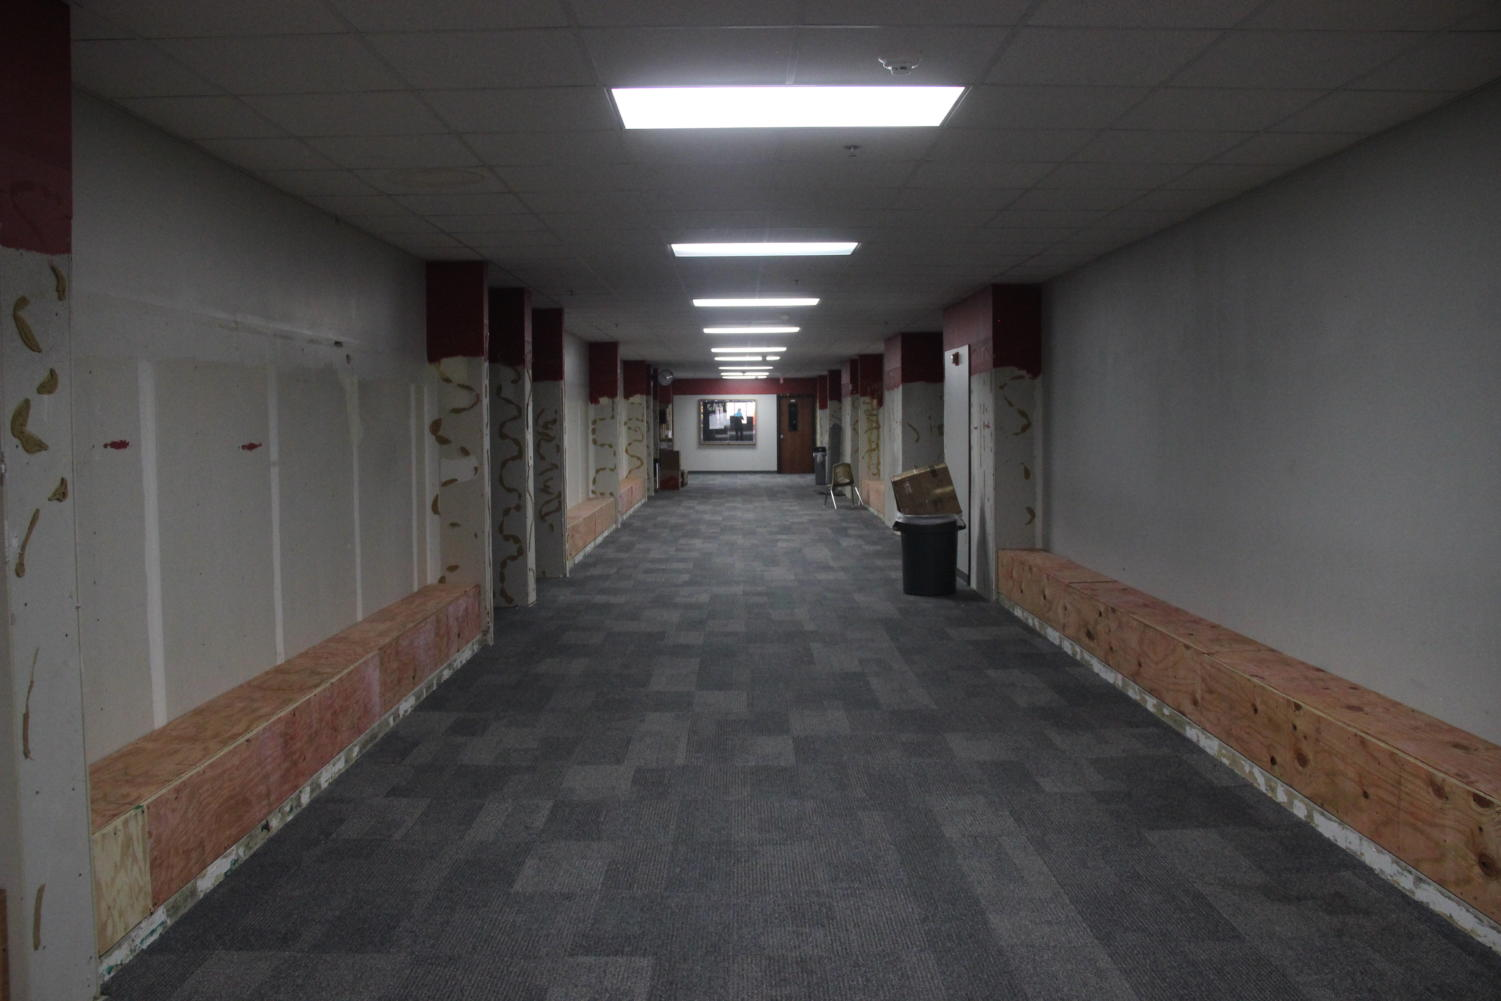 Coppell High School has been renovating its building since the beginning of the summer of 2019. Although the majority of the construction has been completed, the hallways are still being redesigned.